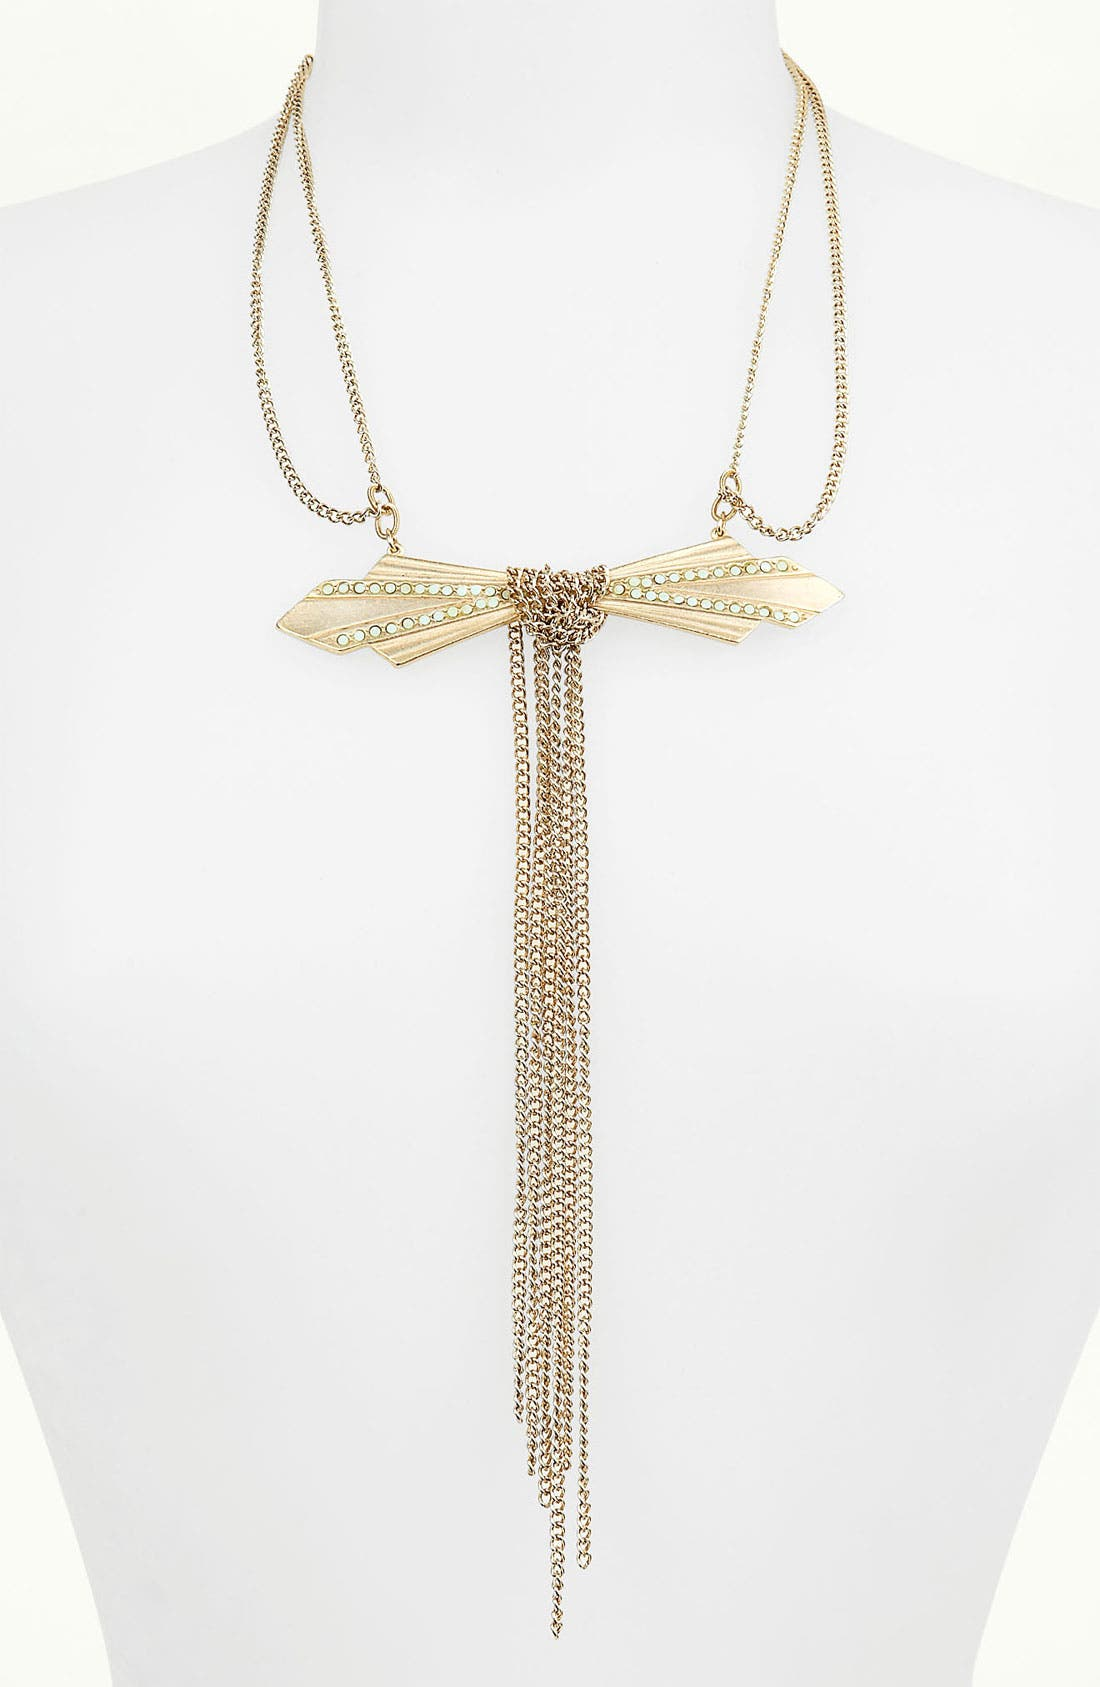 Alternate Image 1 Selected - Bonnie Jonas 'Deco Bow' Necklace